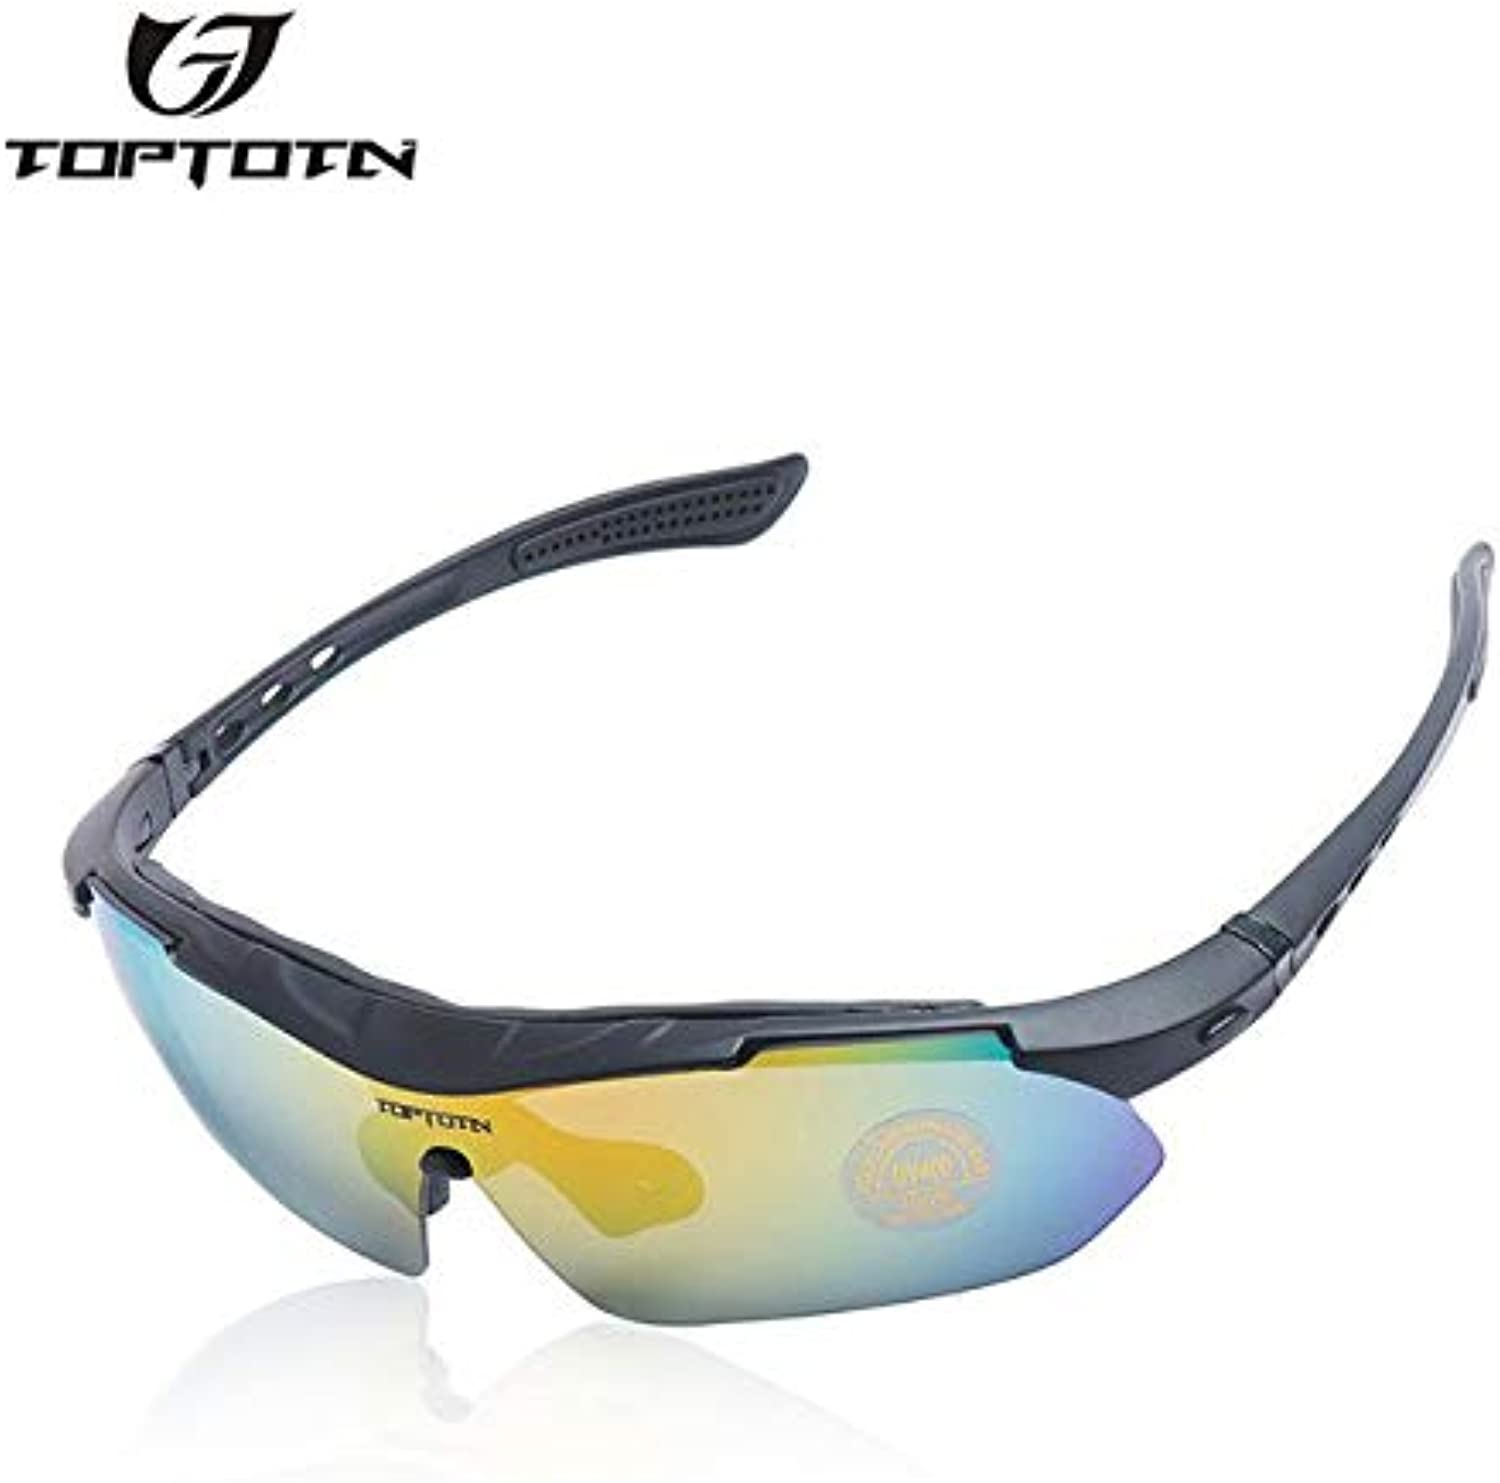 02   TOPTETN Polarized Cycling Glasses Bike Outdoor Sports Bicycle Sunglasses Goggles 5 Groups of Lenses Eyewear Myopia Frame